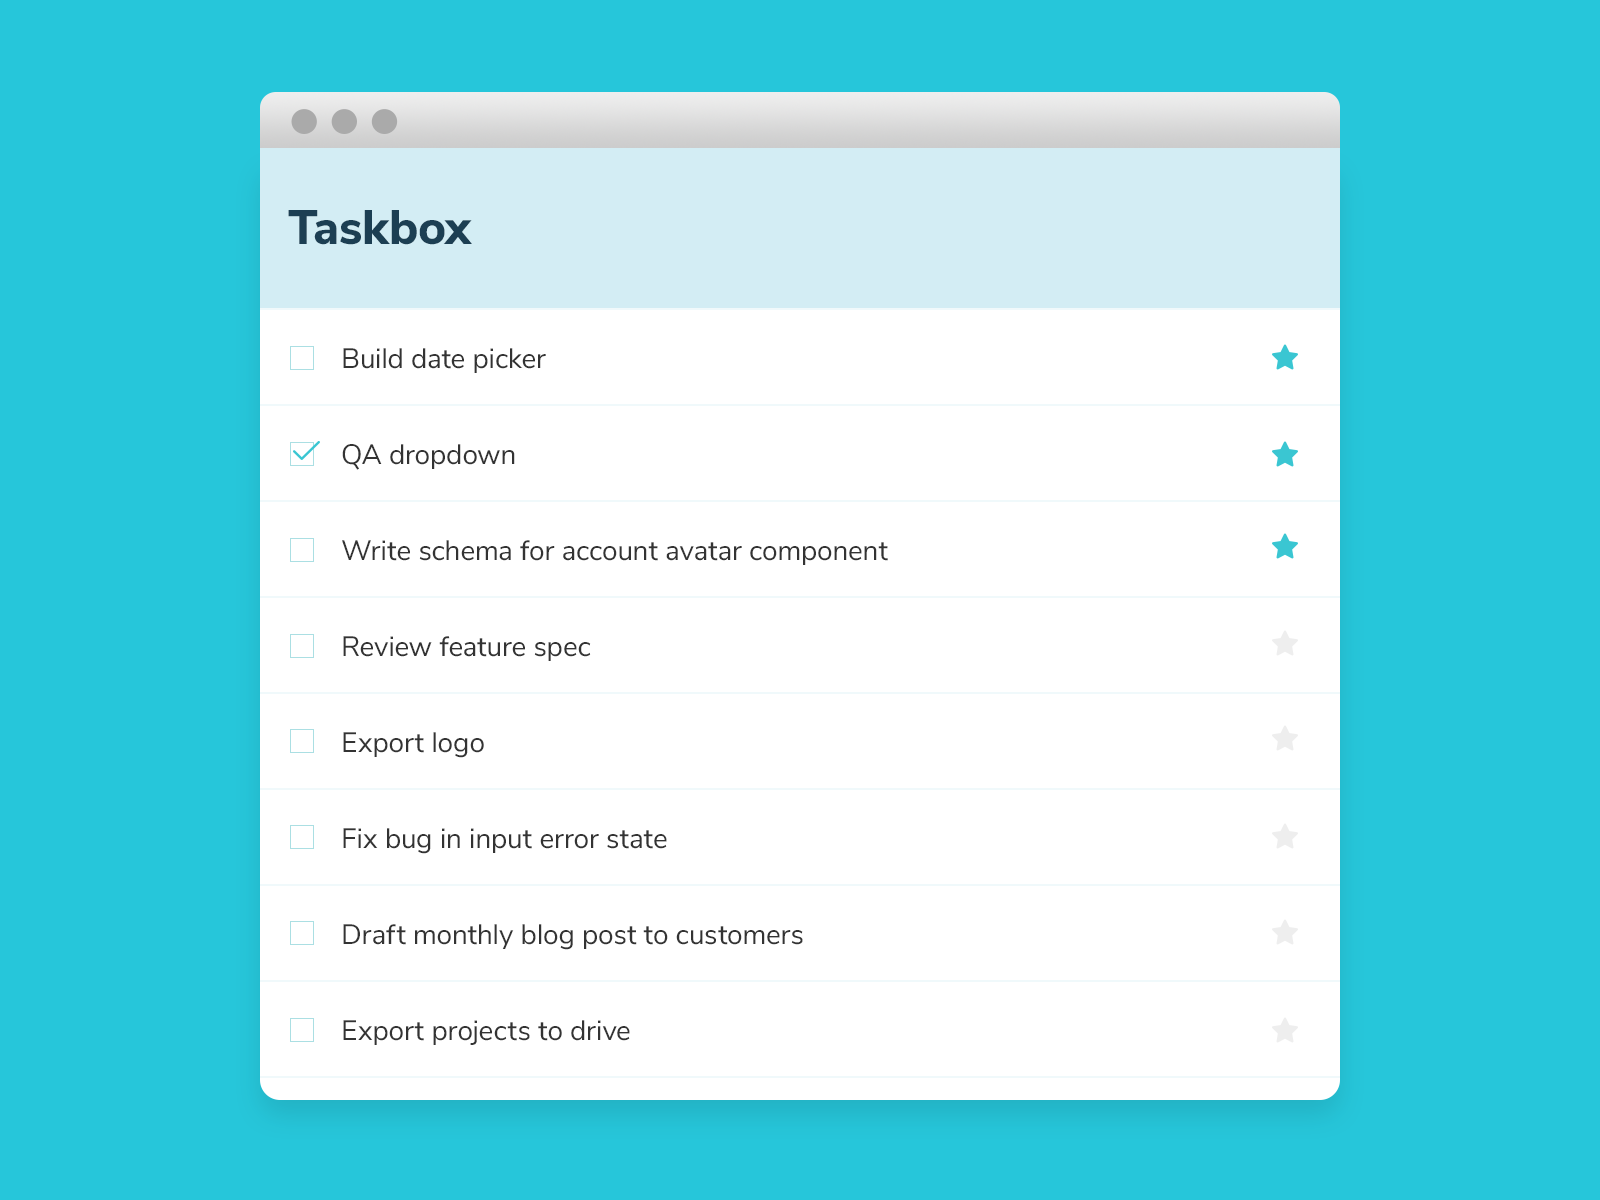 Taskbox UI